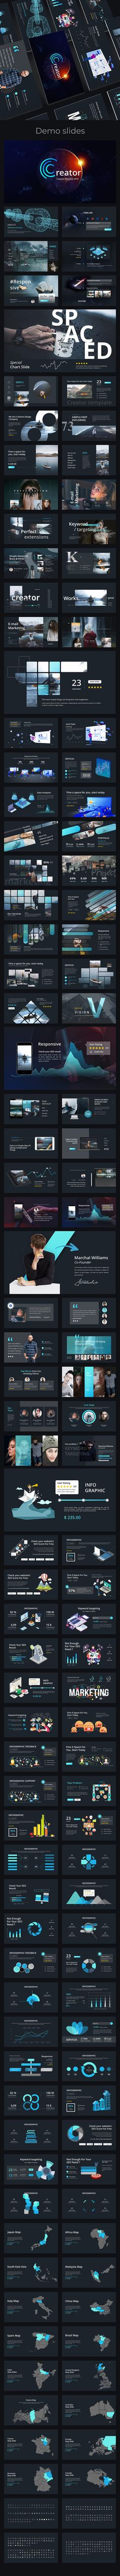 #Creator #Creative #Powerpoint Template - Creative PowerPoint Templates